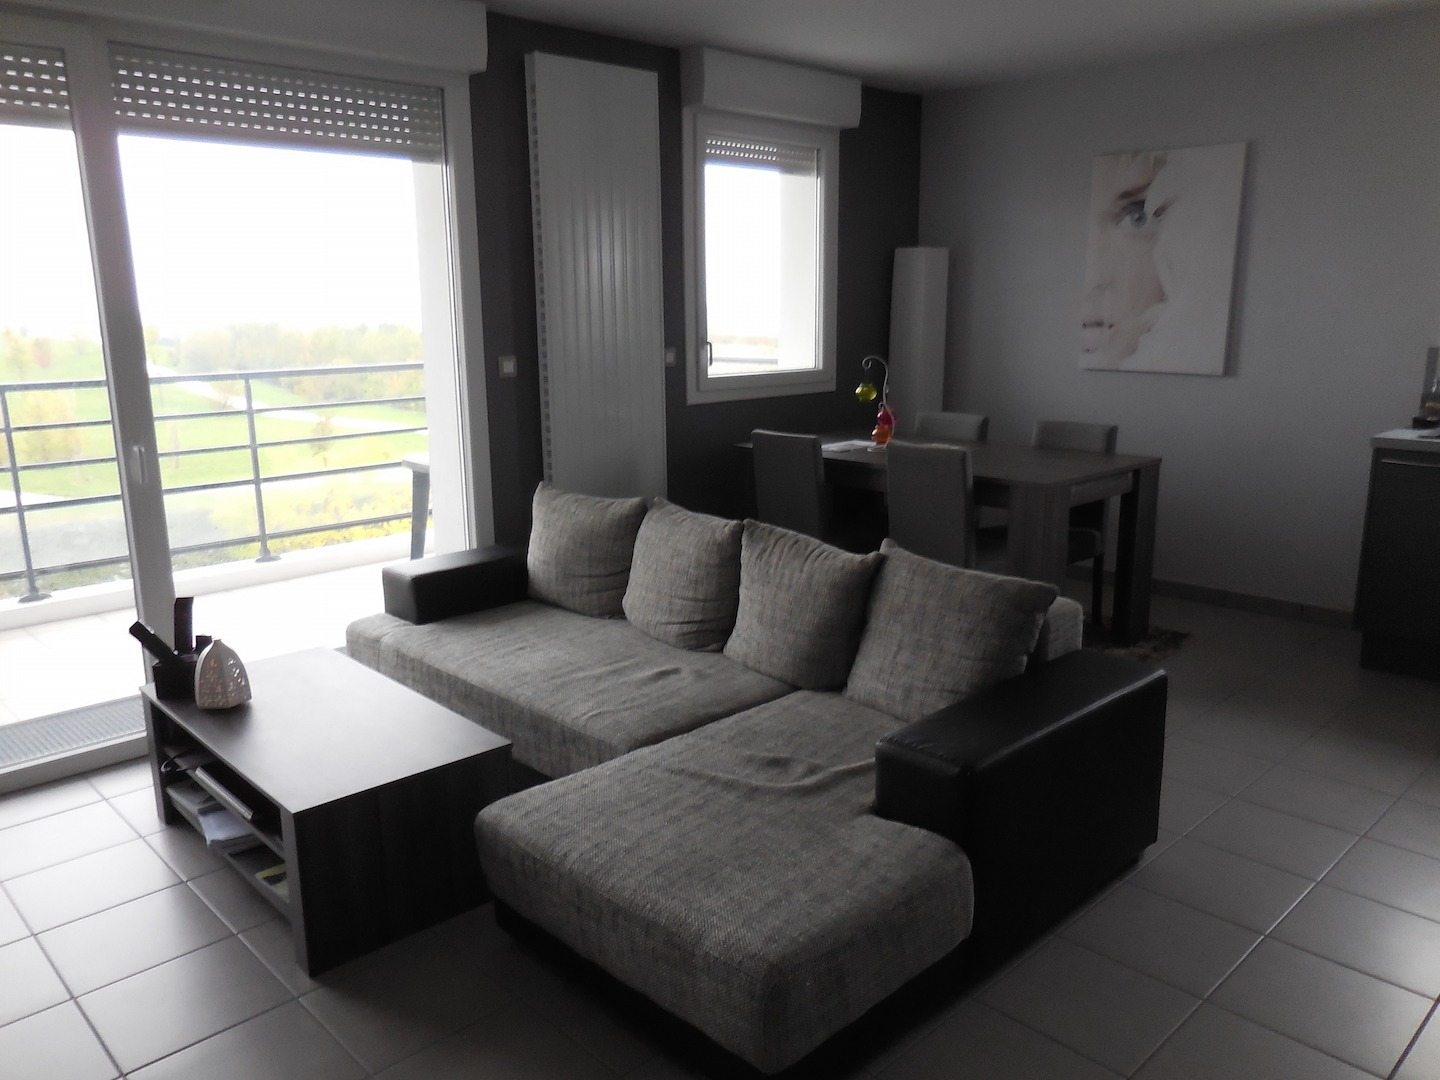 Appartement superbe appartement t3 etat neuf bourgogne for Appartement t3 neuf